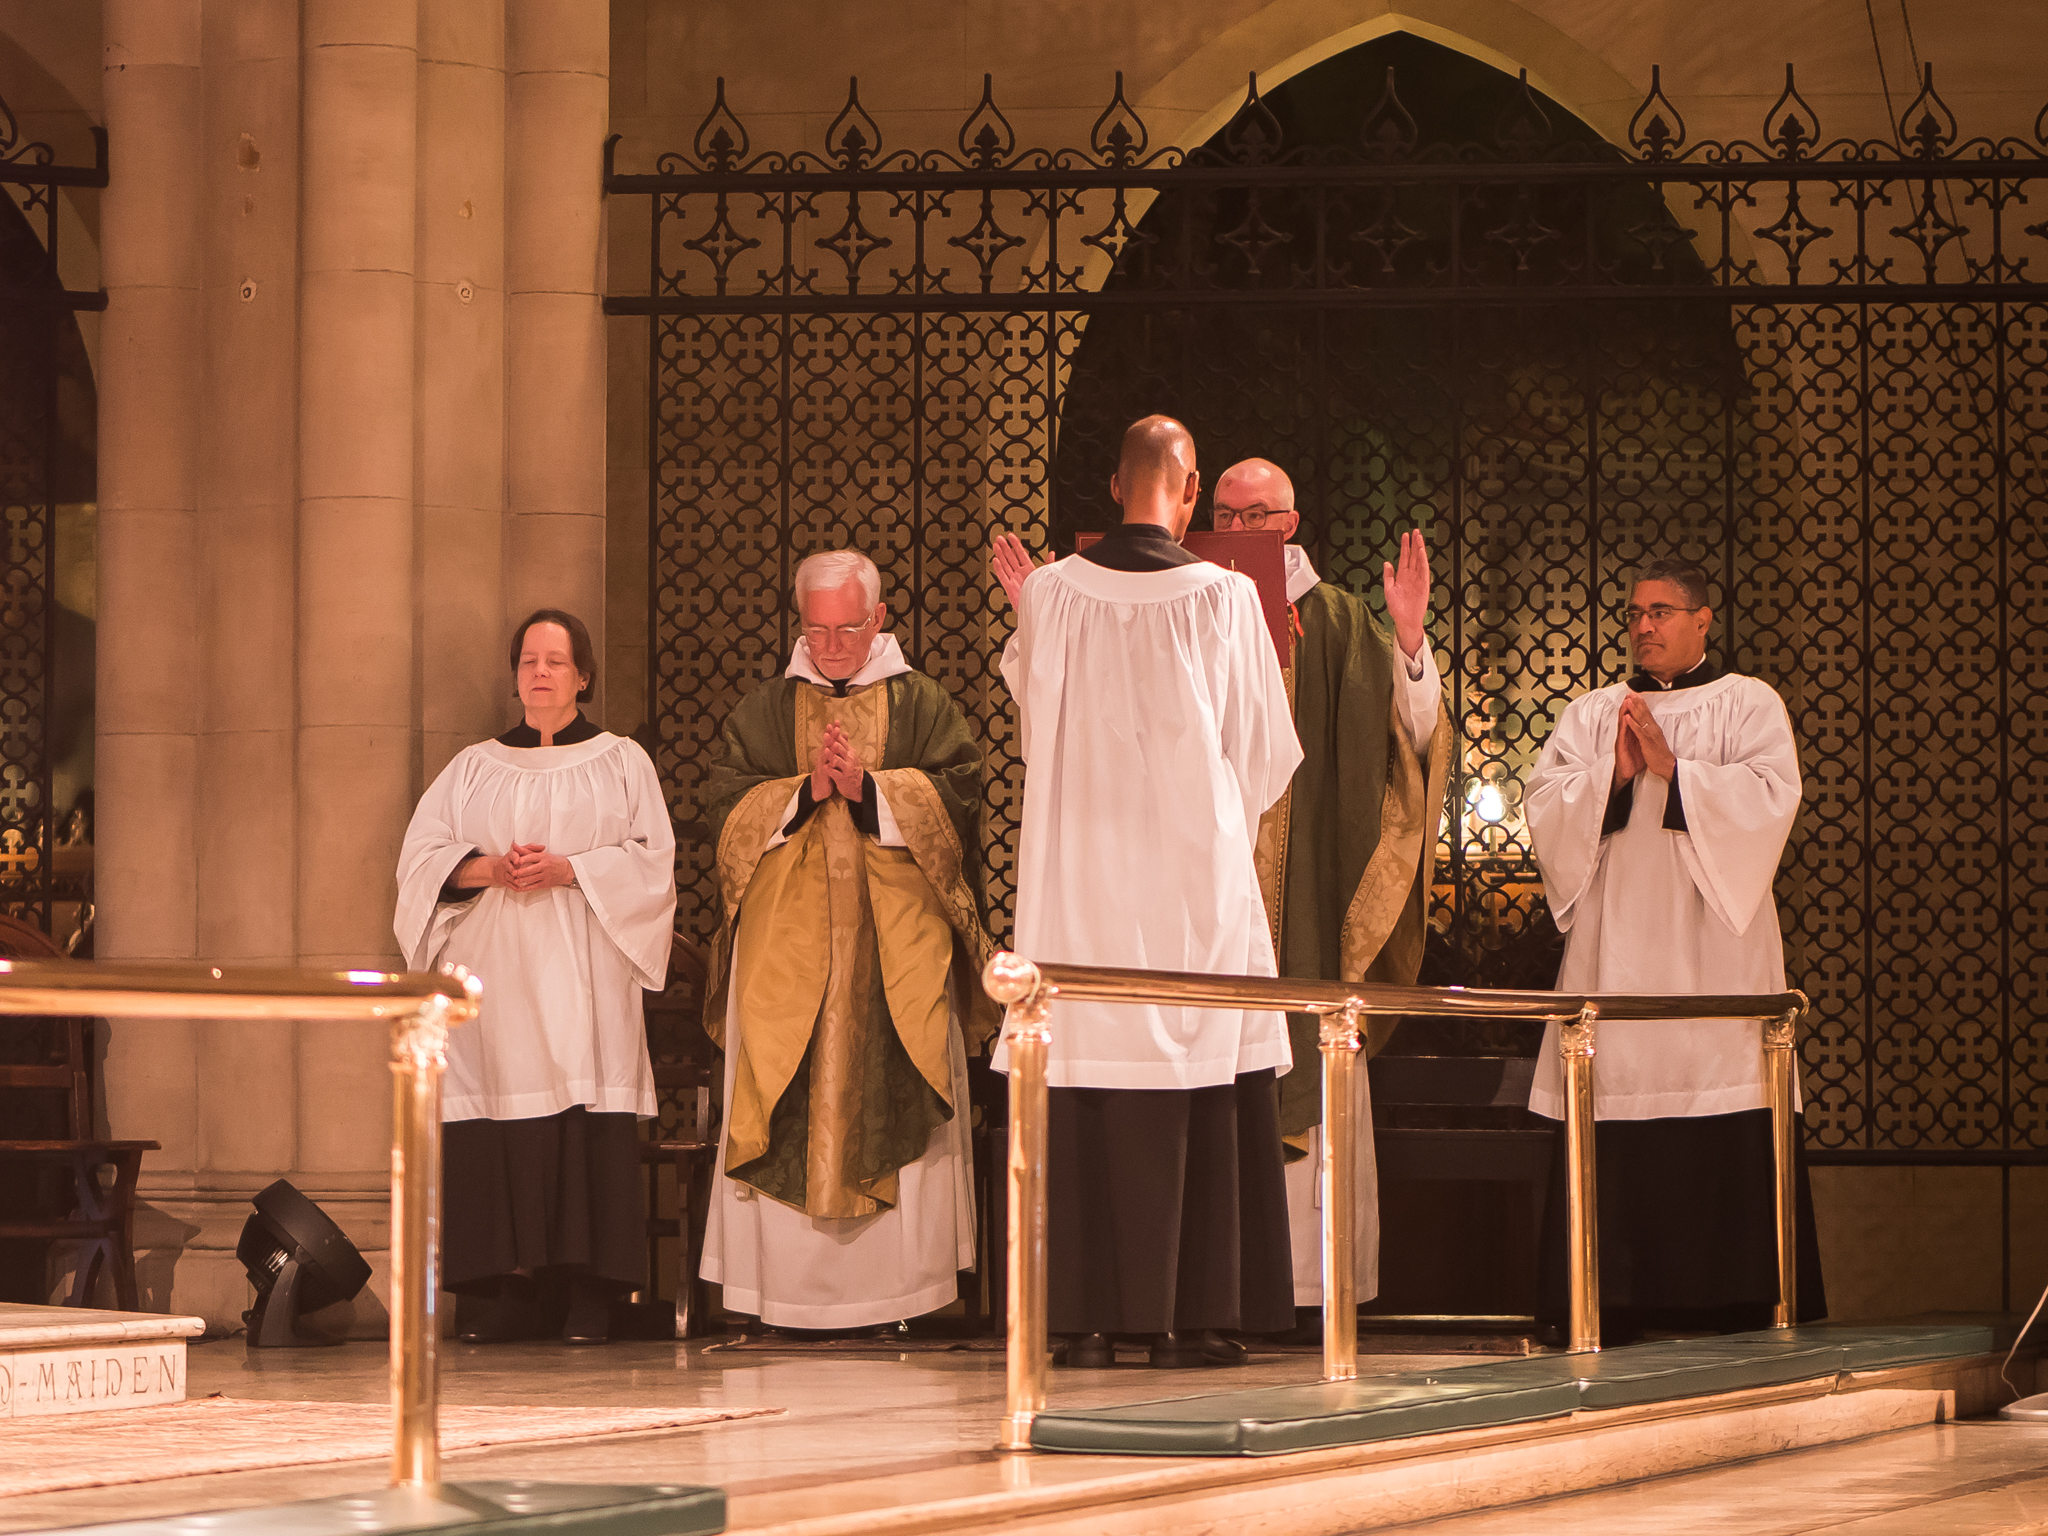 The Collect of the Day is sung by Father Stephen Gerth, celebrant and preacher.  Photo by Ricardo Gomez